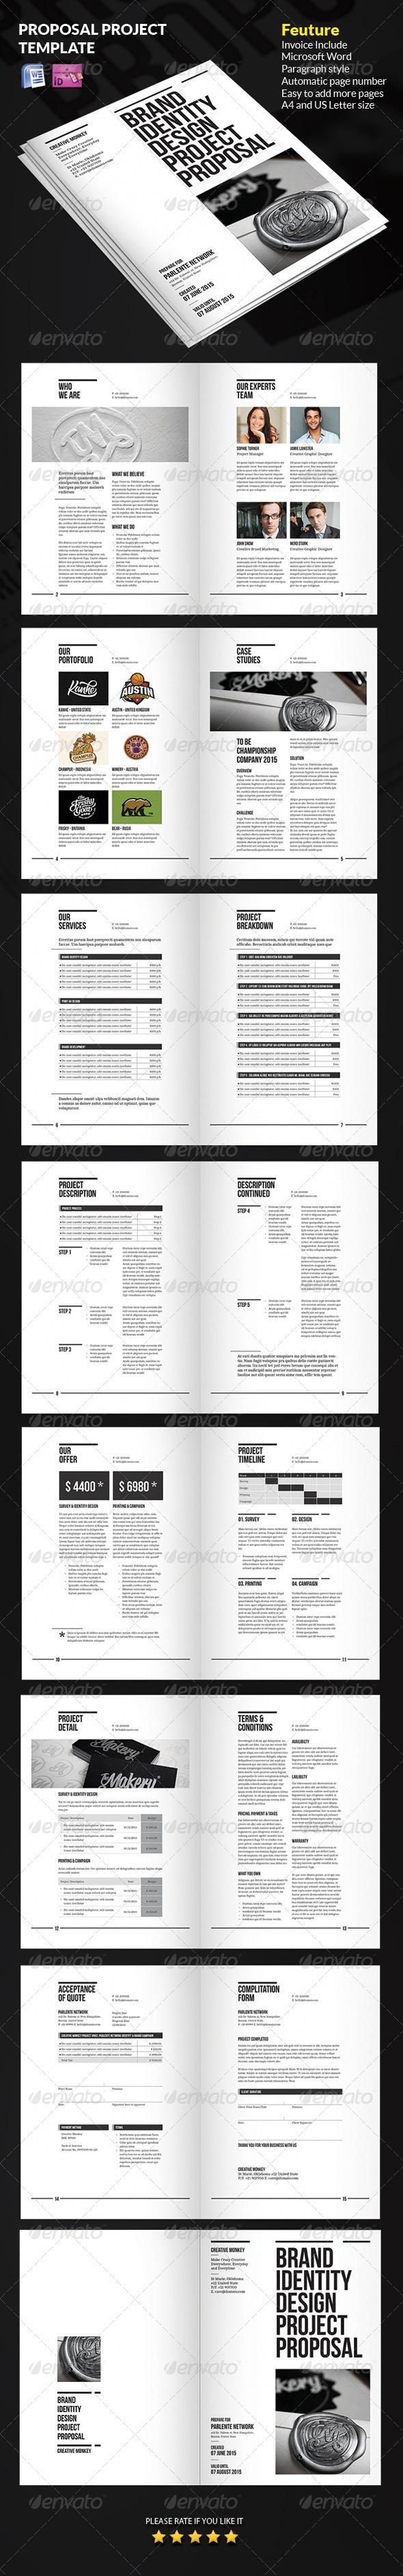 images about invoice project proposal proposal invoice template